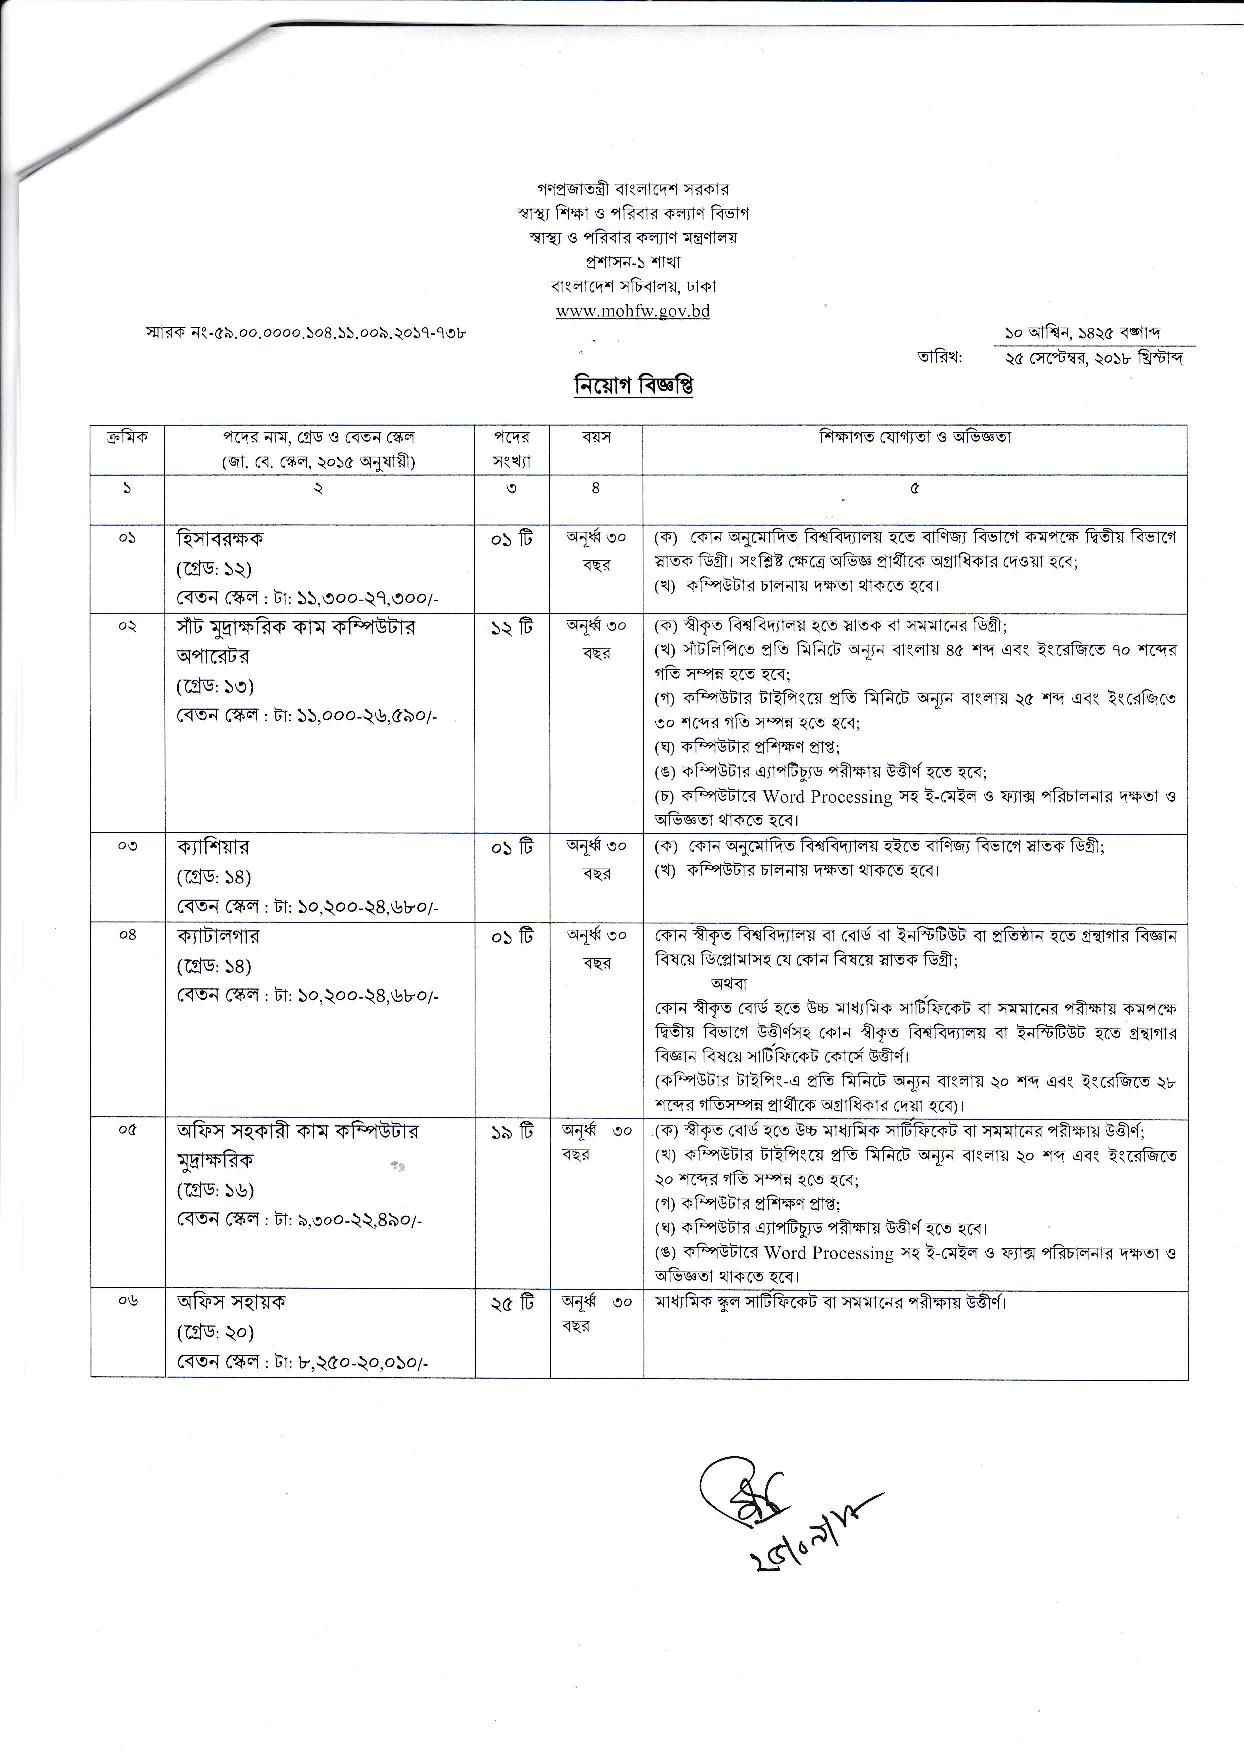 Medical Education and Family Welfare Division (MEFWD) job circular & Apply Instruction -2018